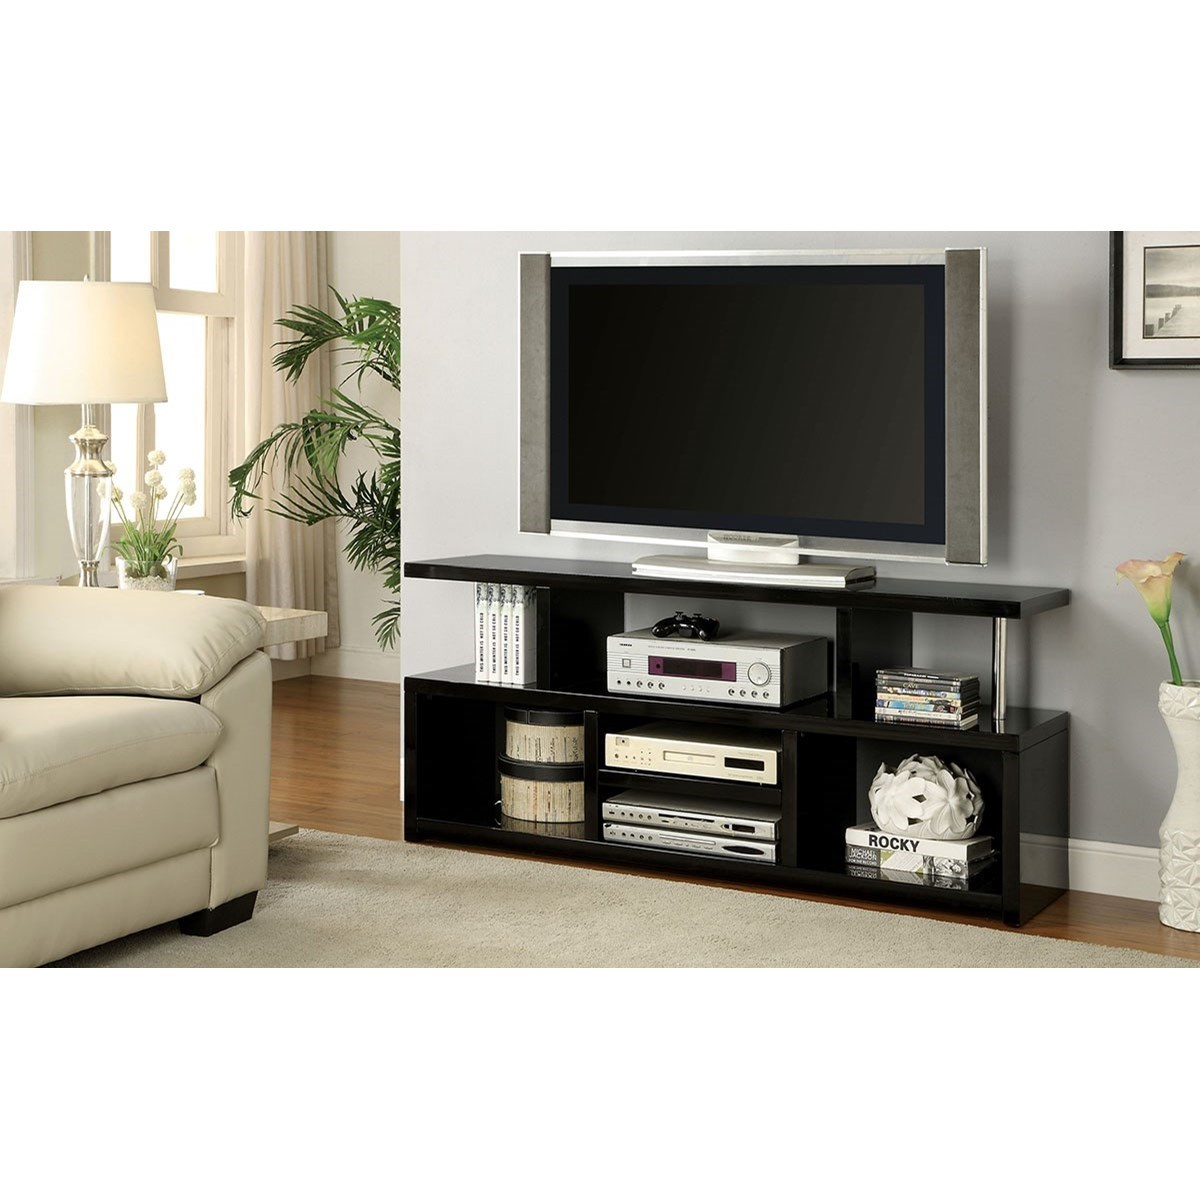 Furniture Of America Evere Contemporary TV Console With